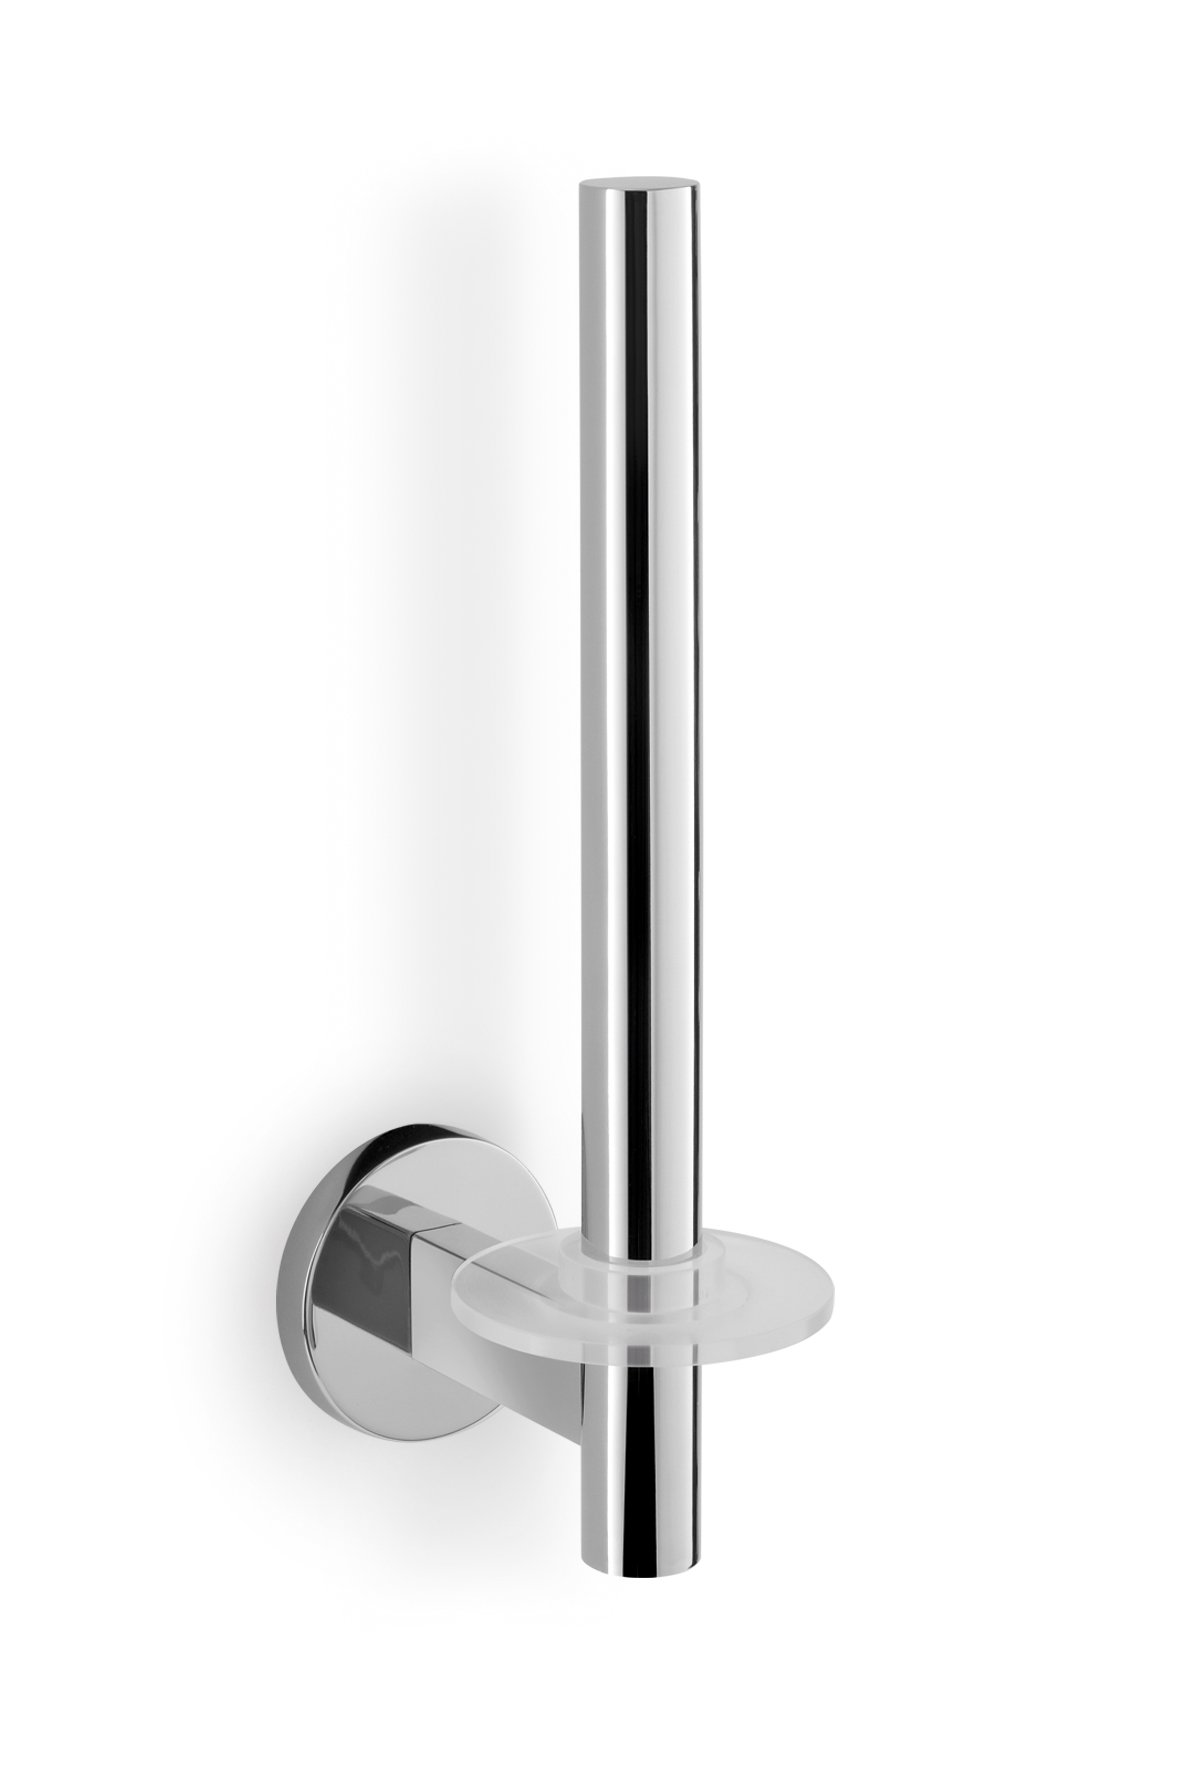 Zack 40053 Scala Wall Mounted Spare Toilet Roll Holder, 9.84 by 2.36 by 4.26-Inch